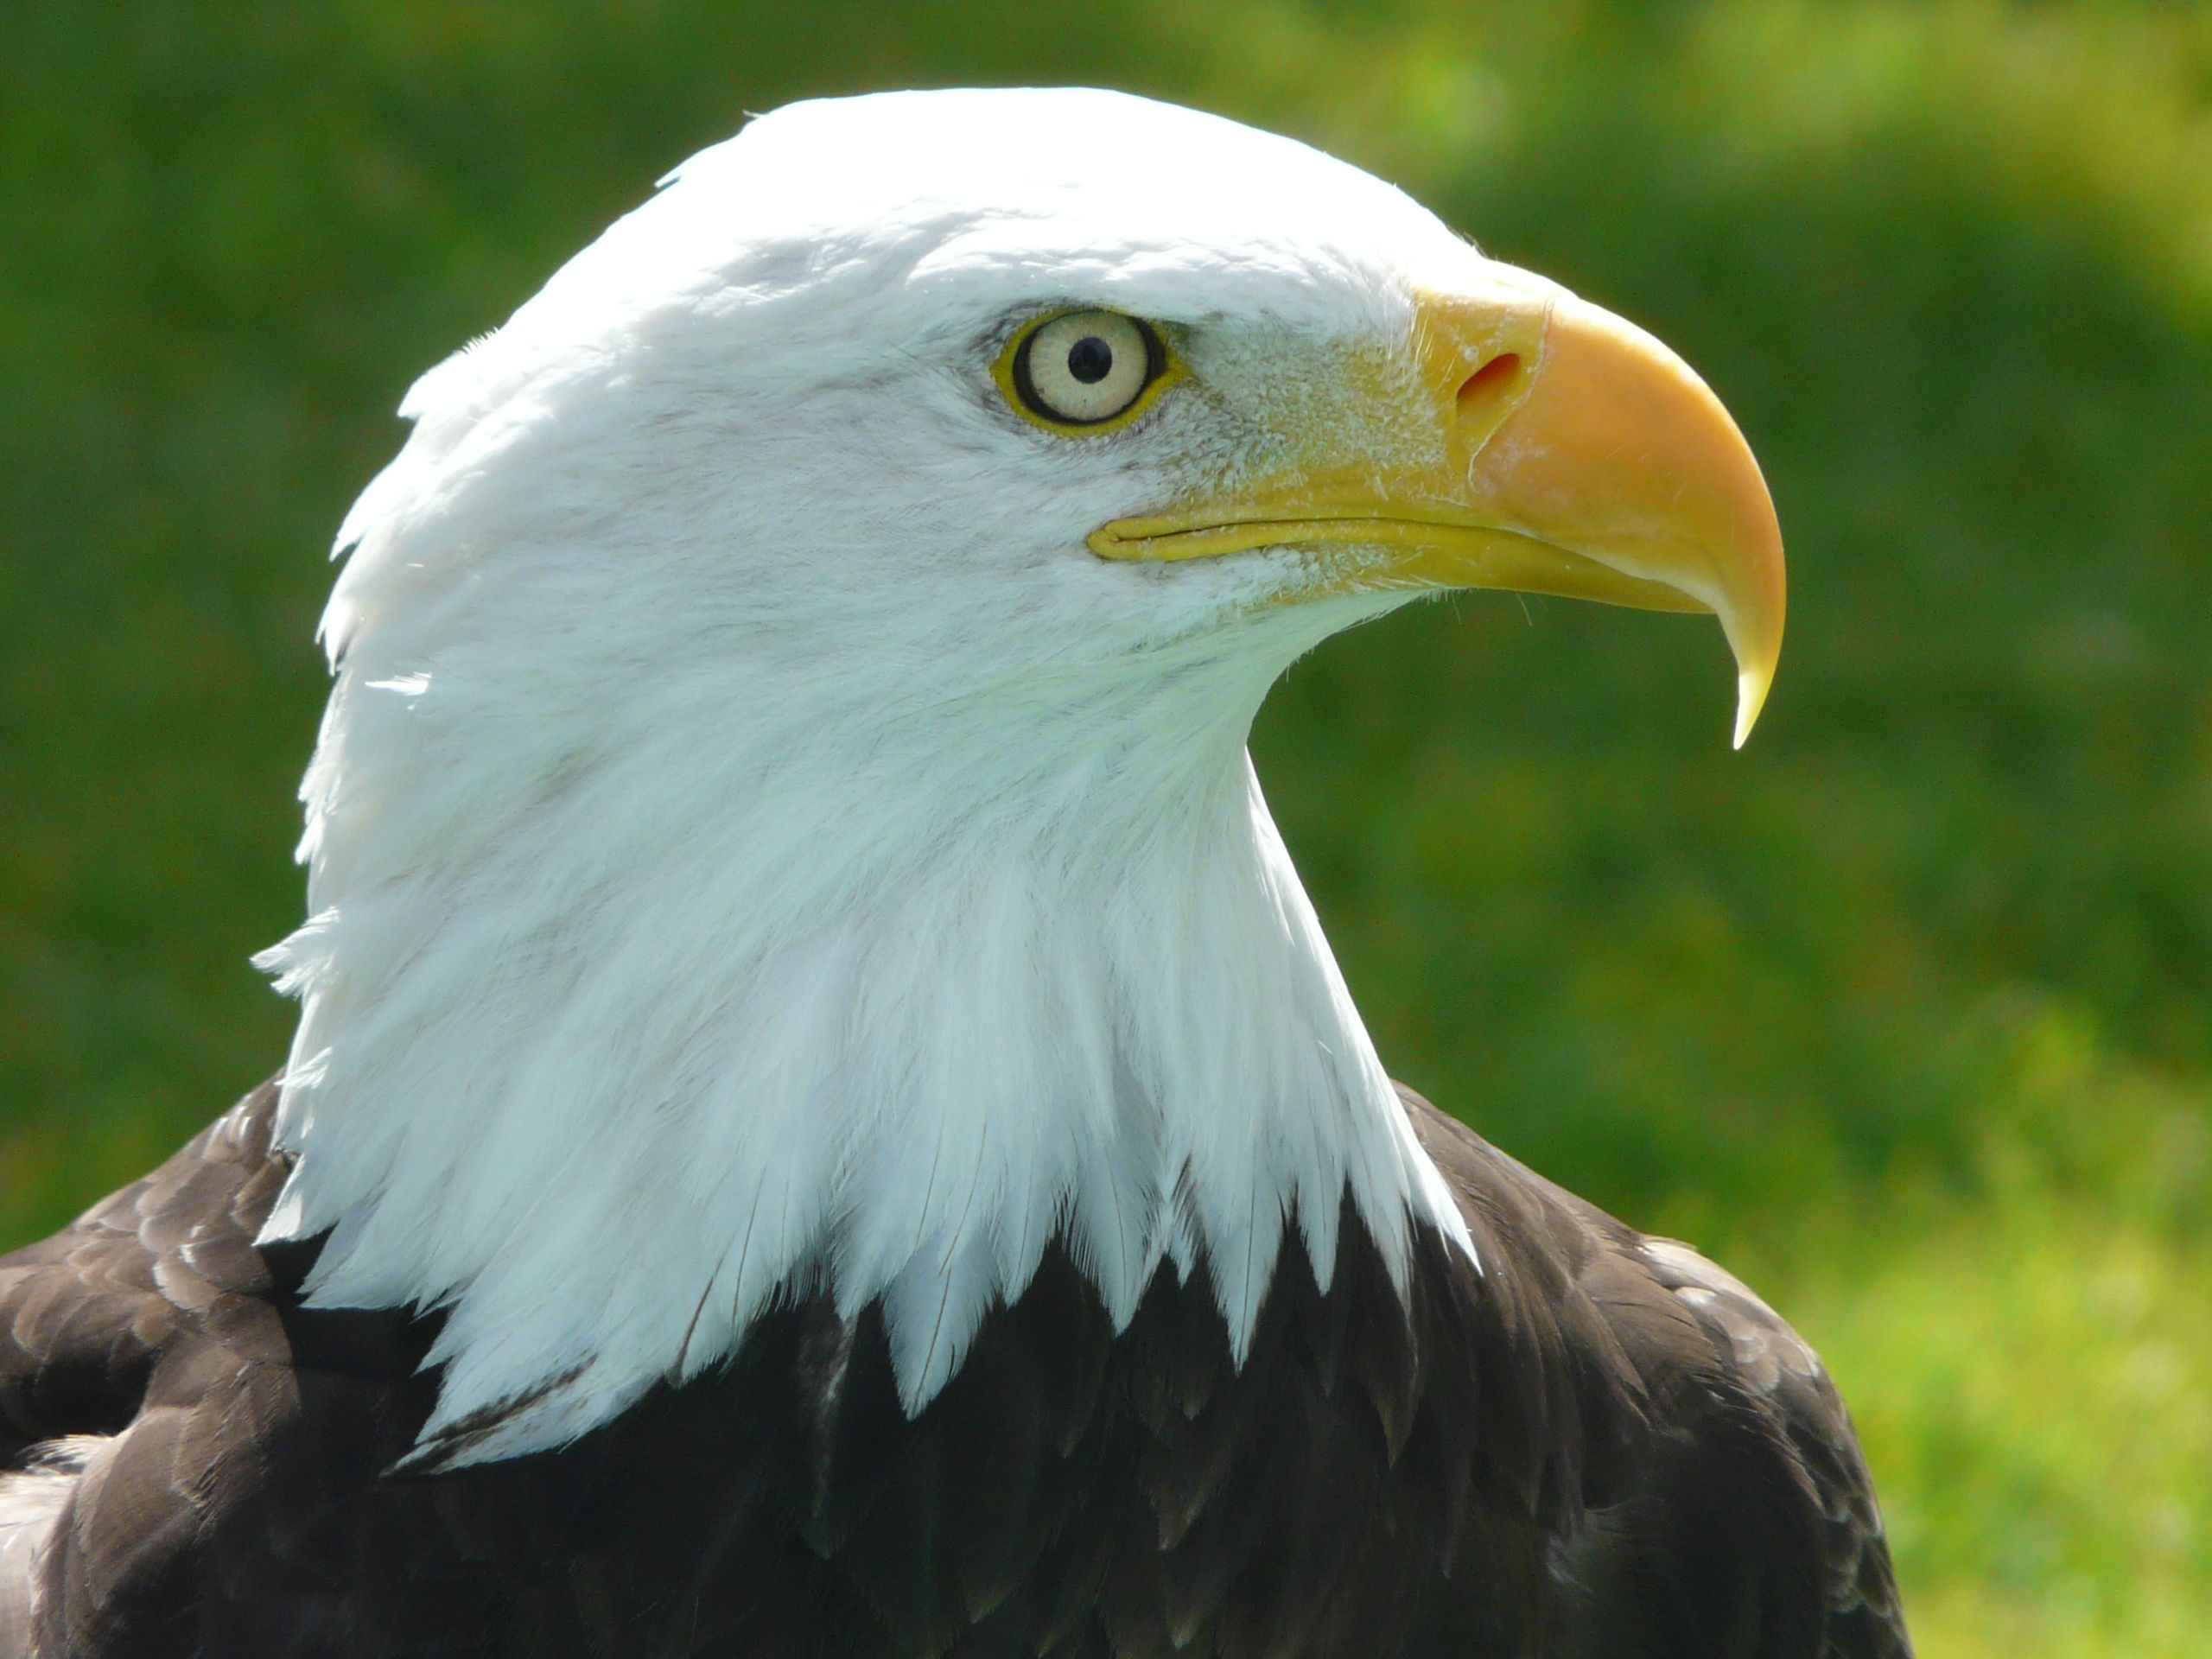 Alberta Birds Of Prey Centre Gets Visitors From All Over The World